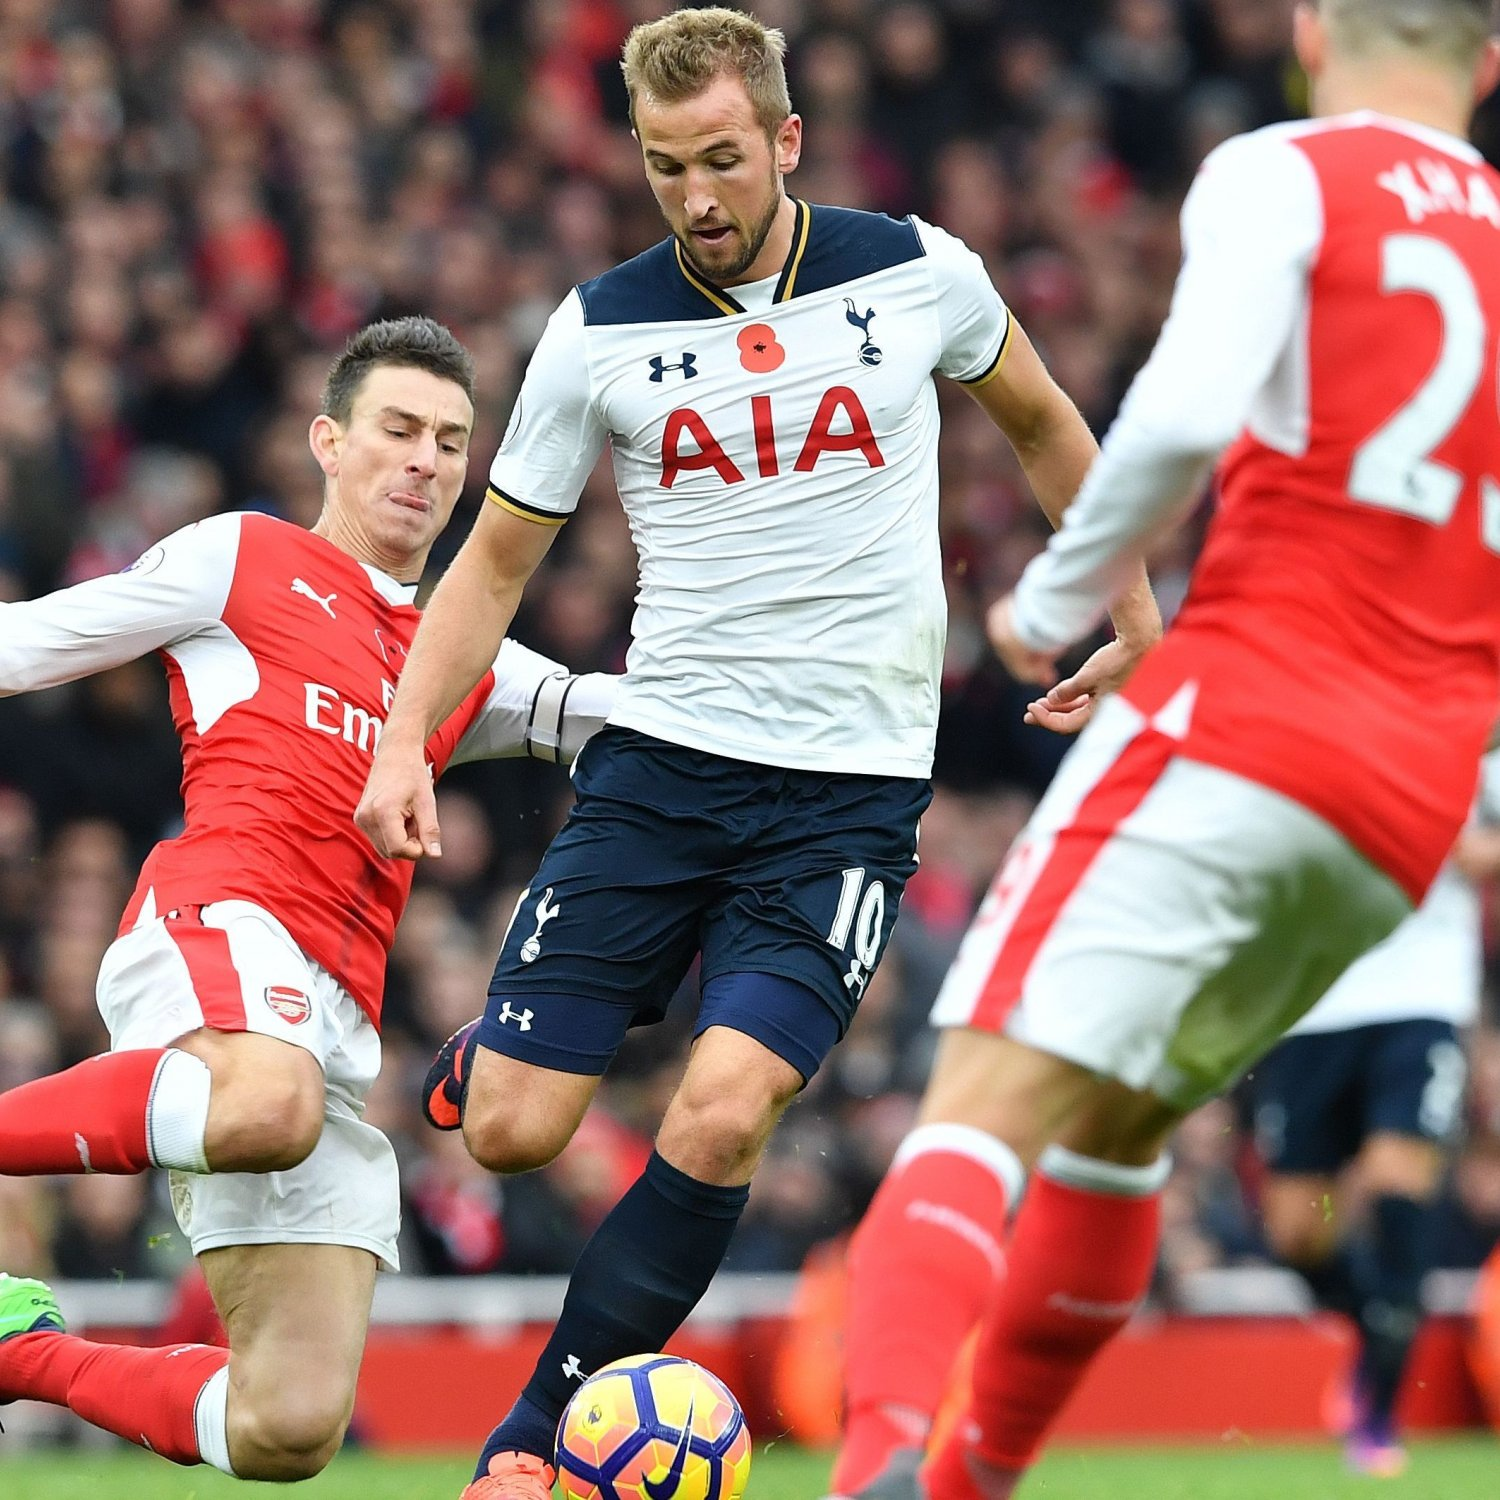 Chelsea Vs Tottenham Score Reaction From 2016 Premier: Arsenal Vs. Tottenham: Score And Reaction From 2016